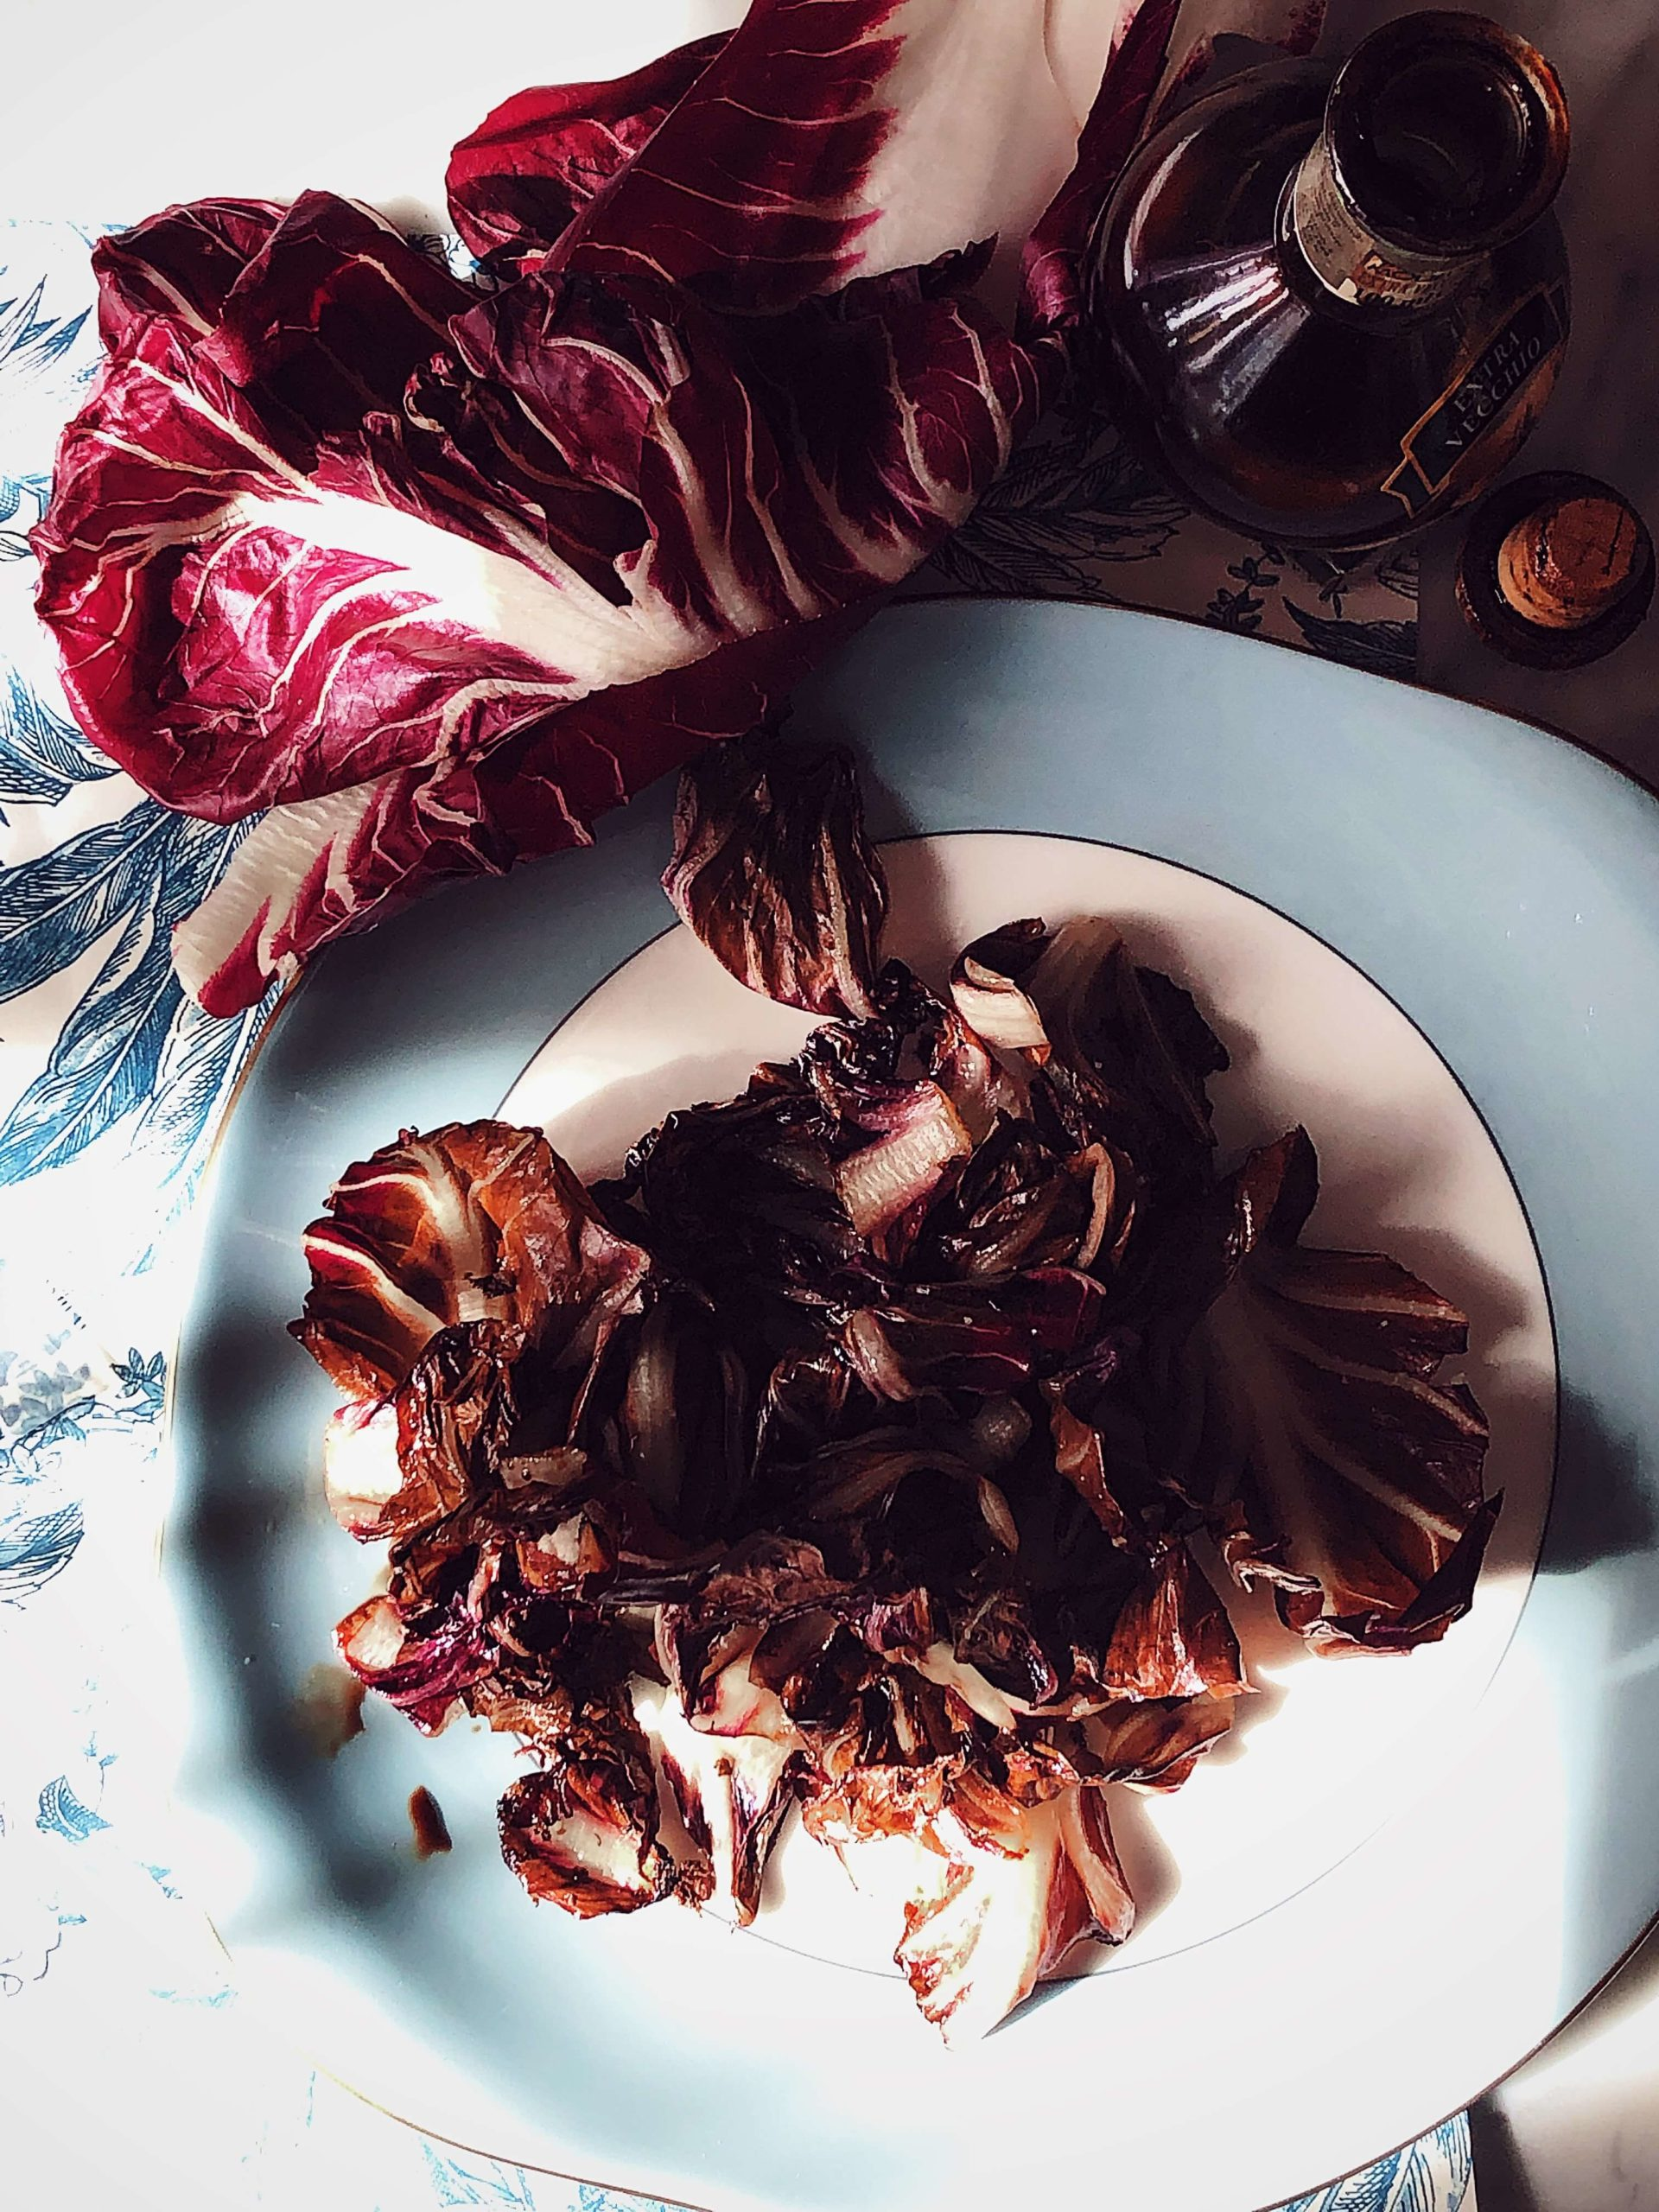 grilled radicchio with balsamic vinegar, raw leaves of radicchio, and a bottle of balsamic vinegar